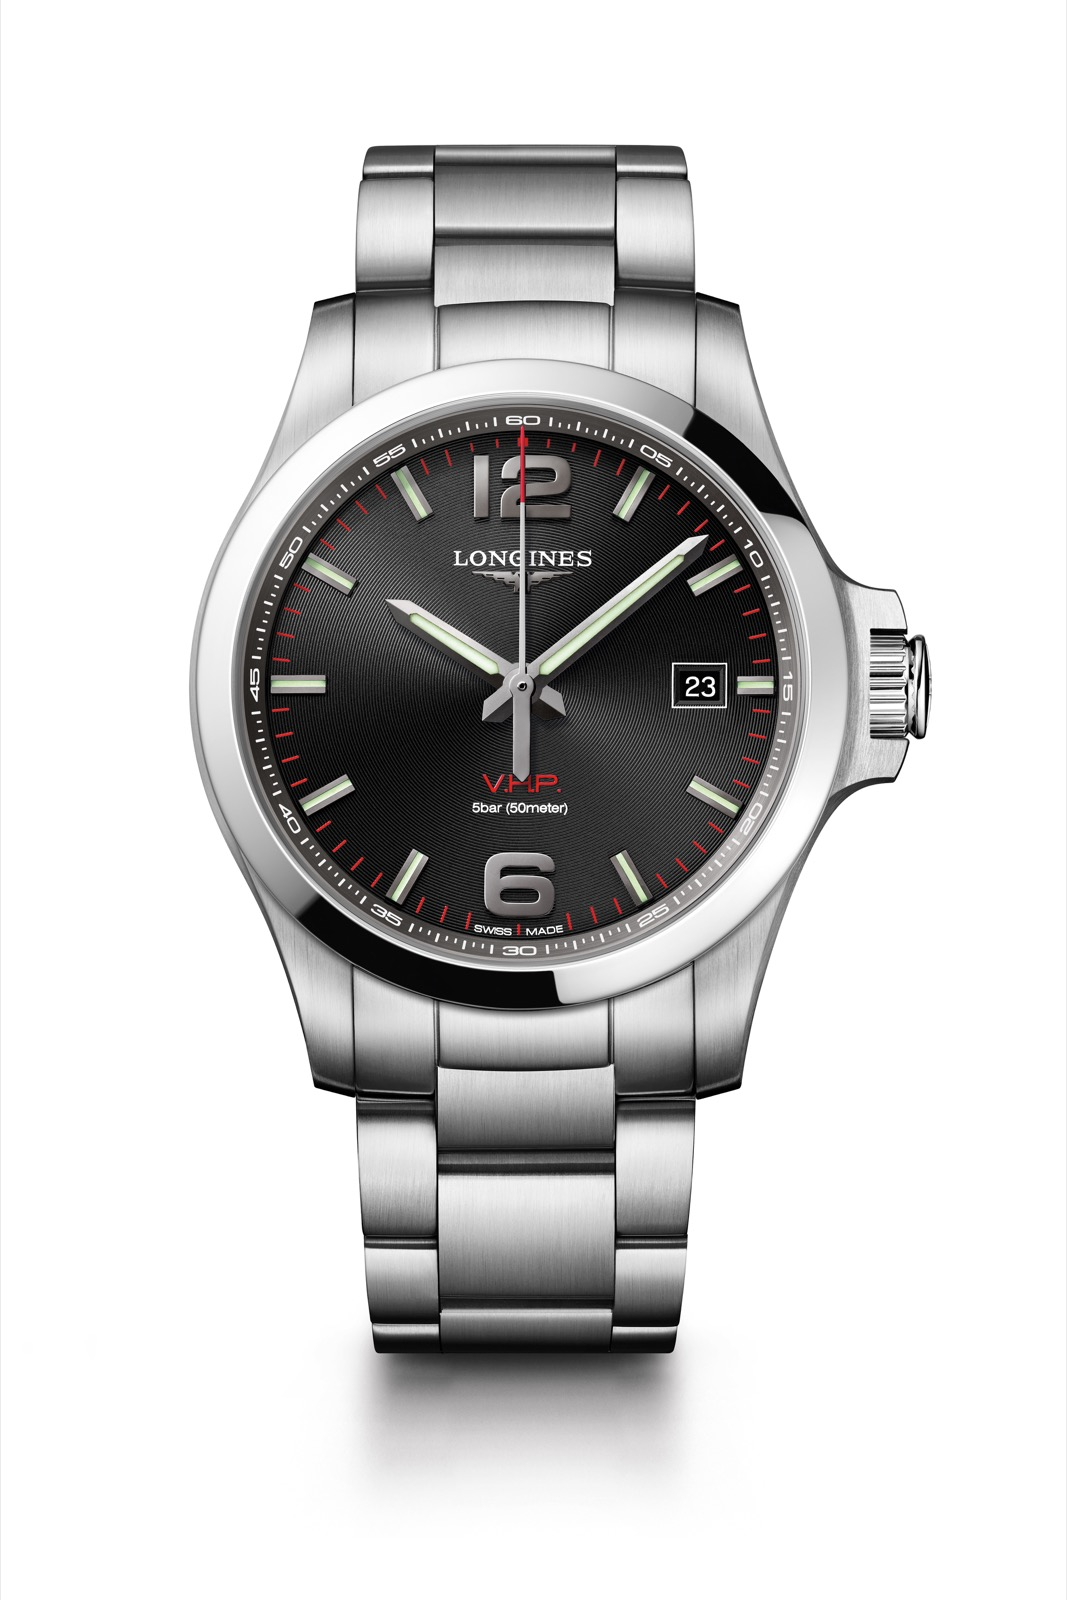 Longines Conquest VHP